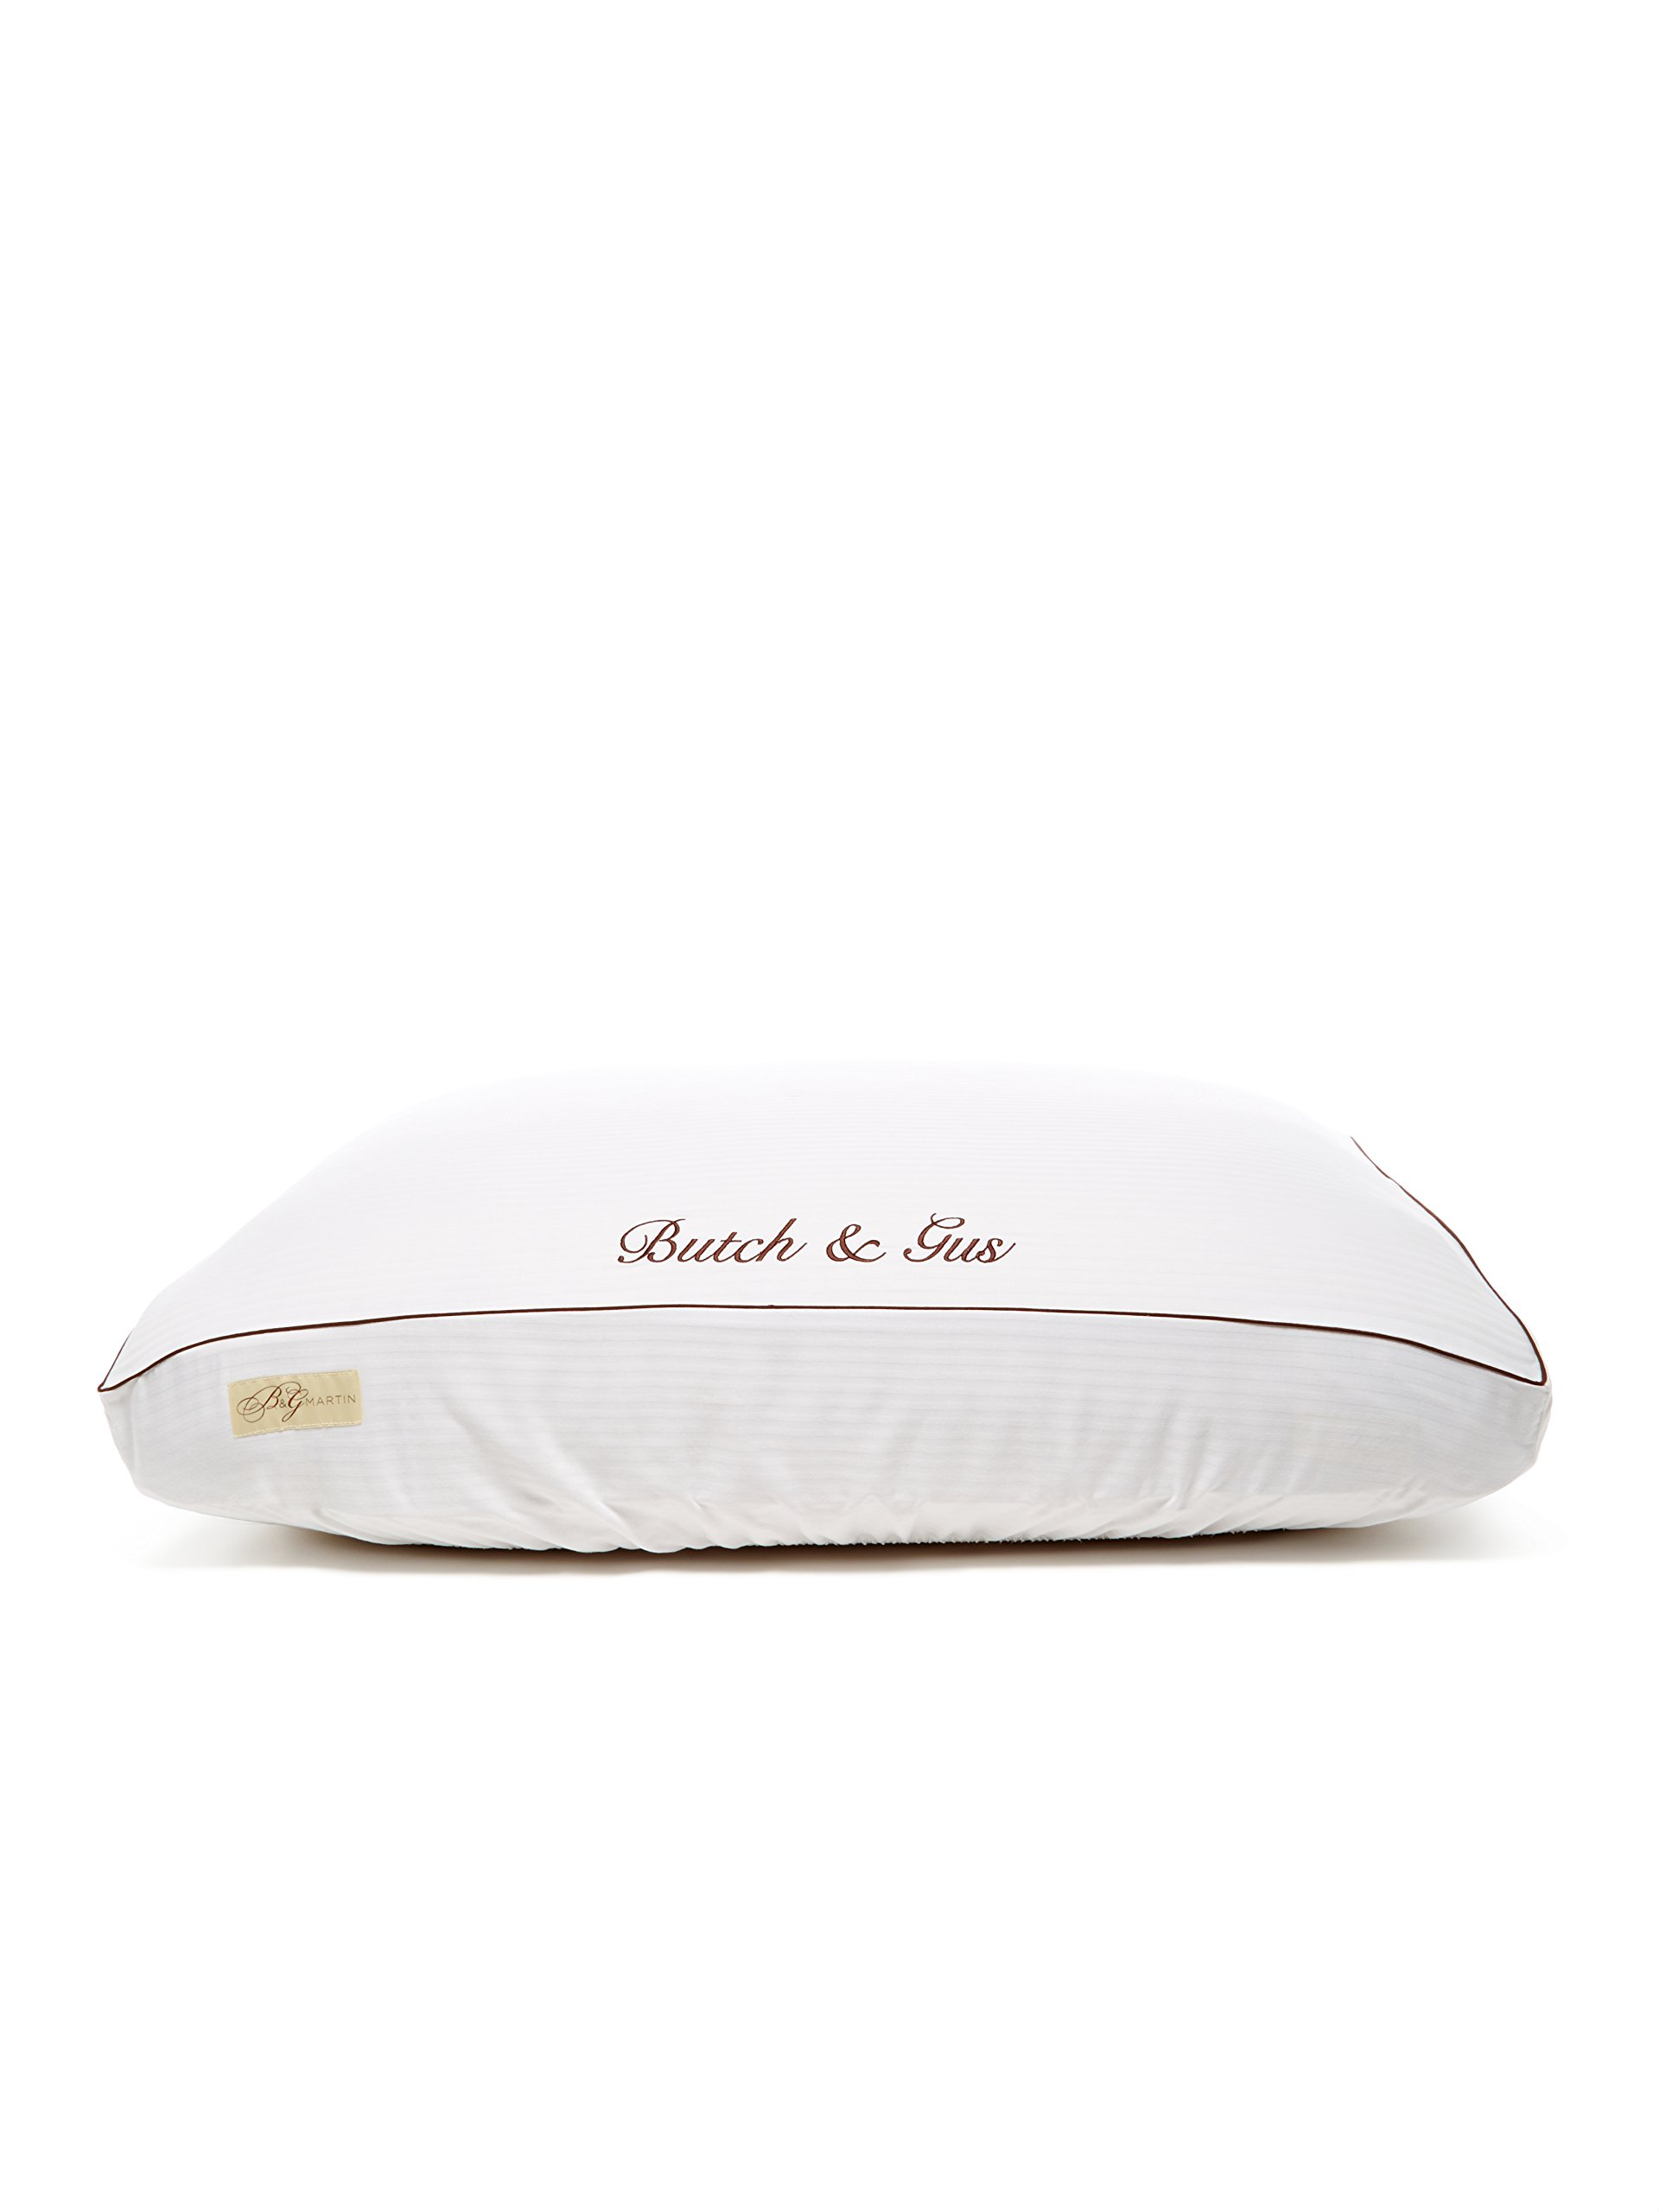 Premium Frette White with Chocolate Piping Fitted Linens - Frette Choc - LG